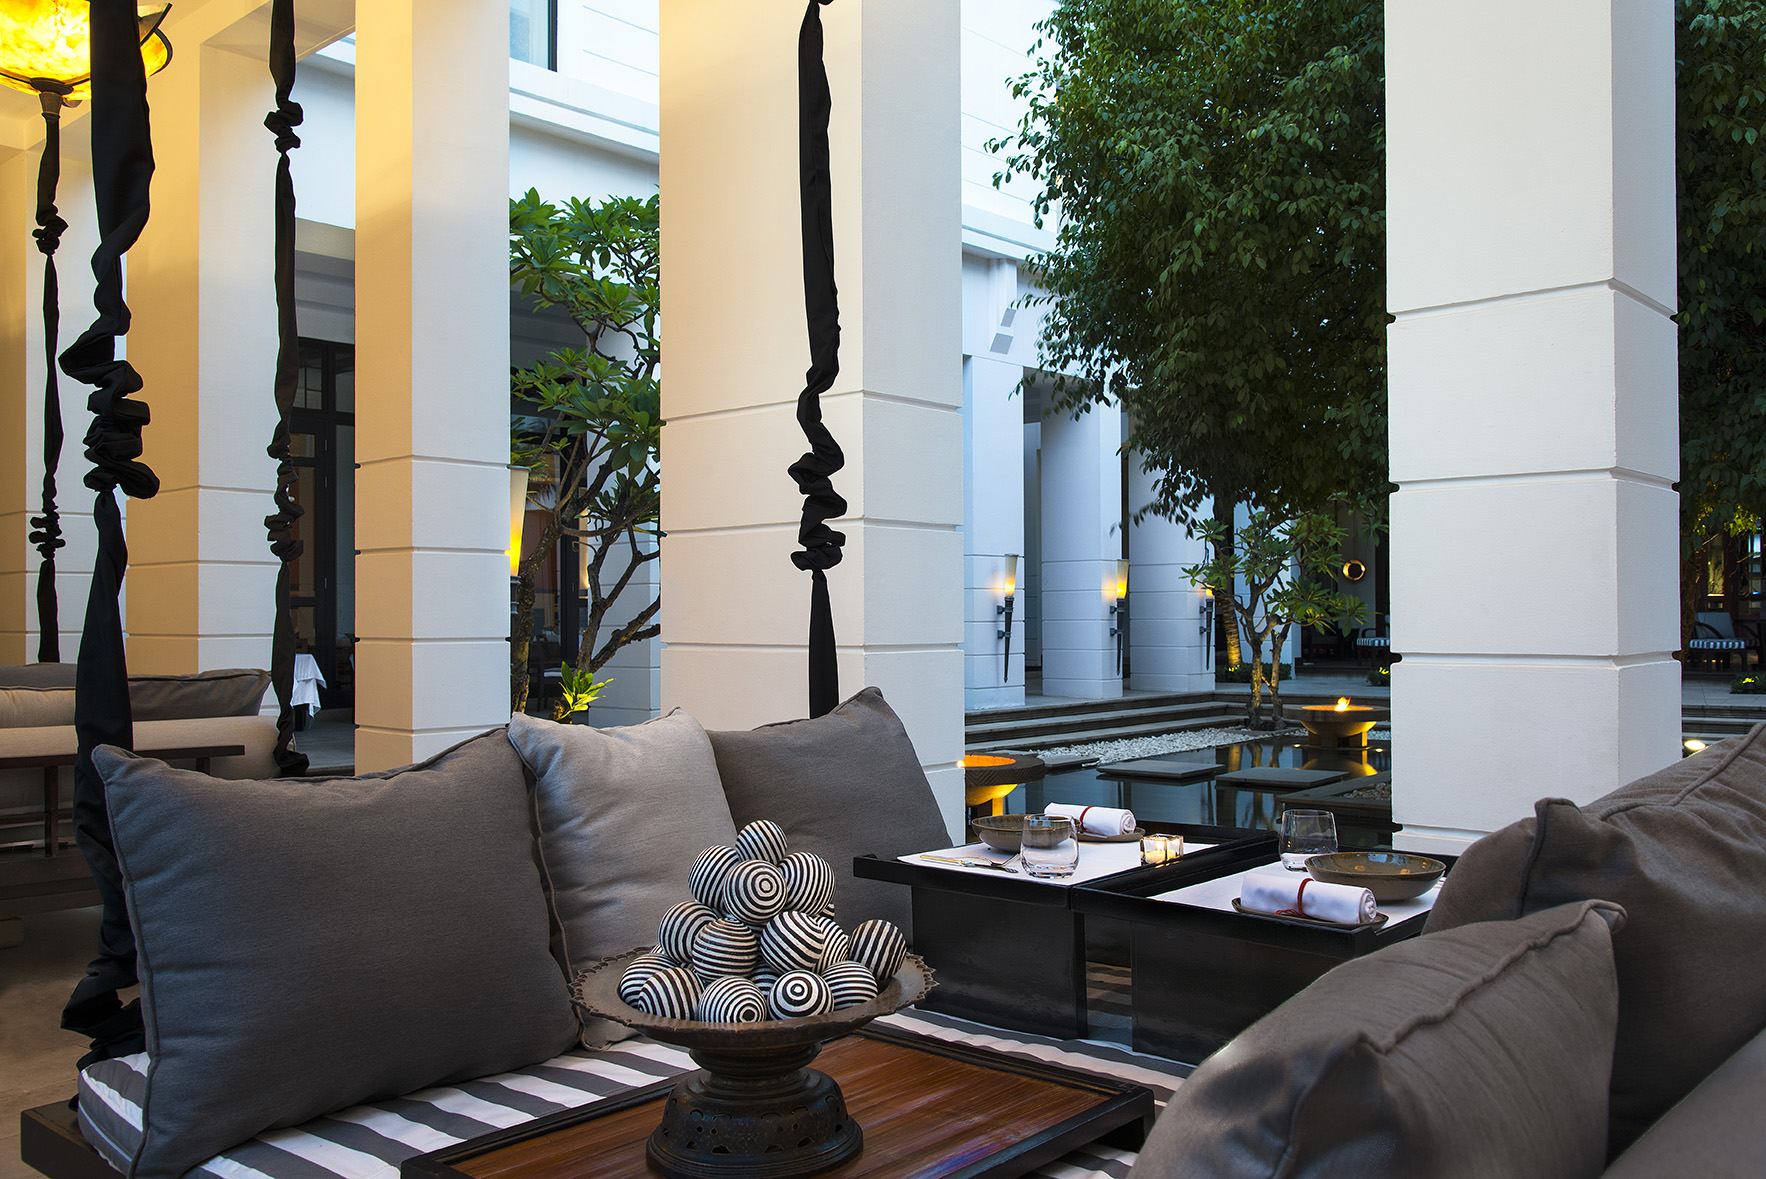 The courtyard of the Park Hyatt Siem Reap.